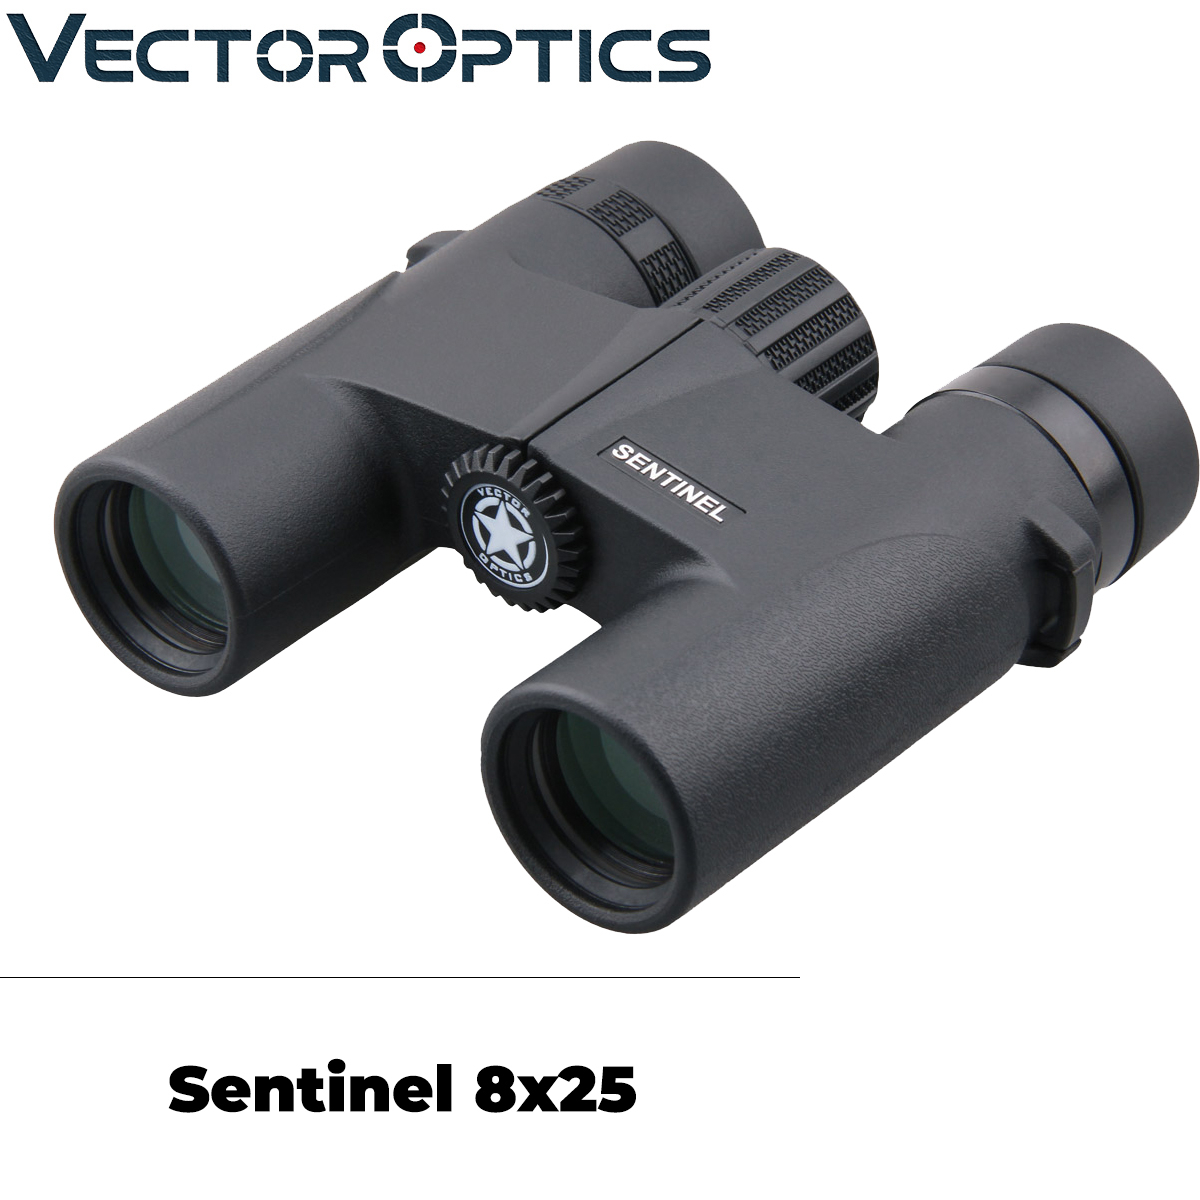 Vector Optics Sentinel 8x25 Water Proof Binoculars Prism Bak4 With FMC 7 Lens for Bird Watching Hunting Traveling Sightseeing image